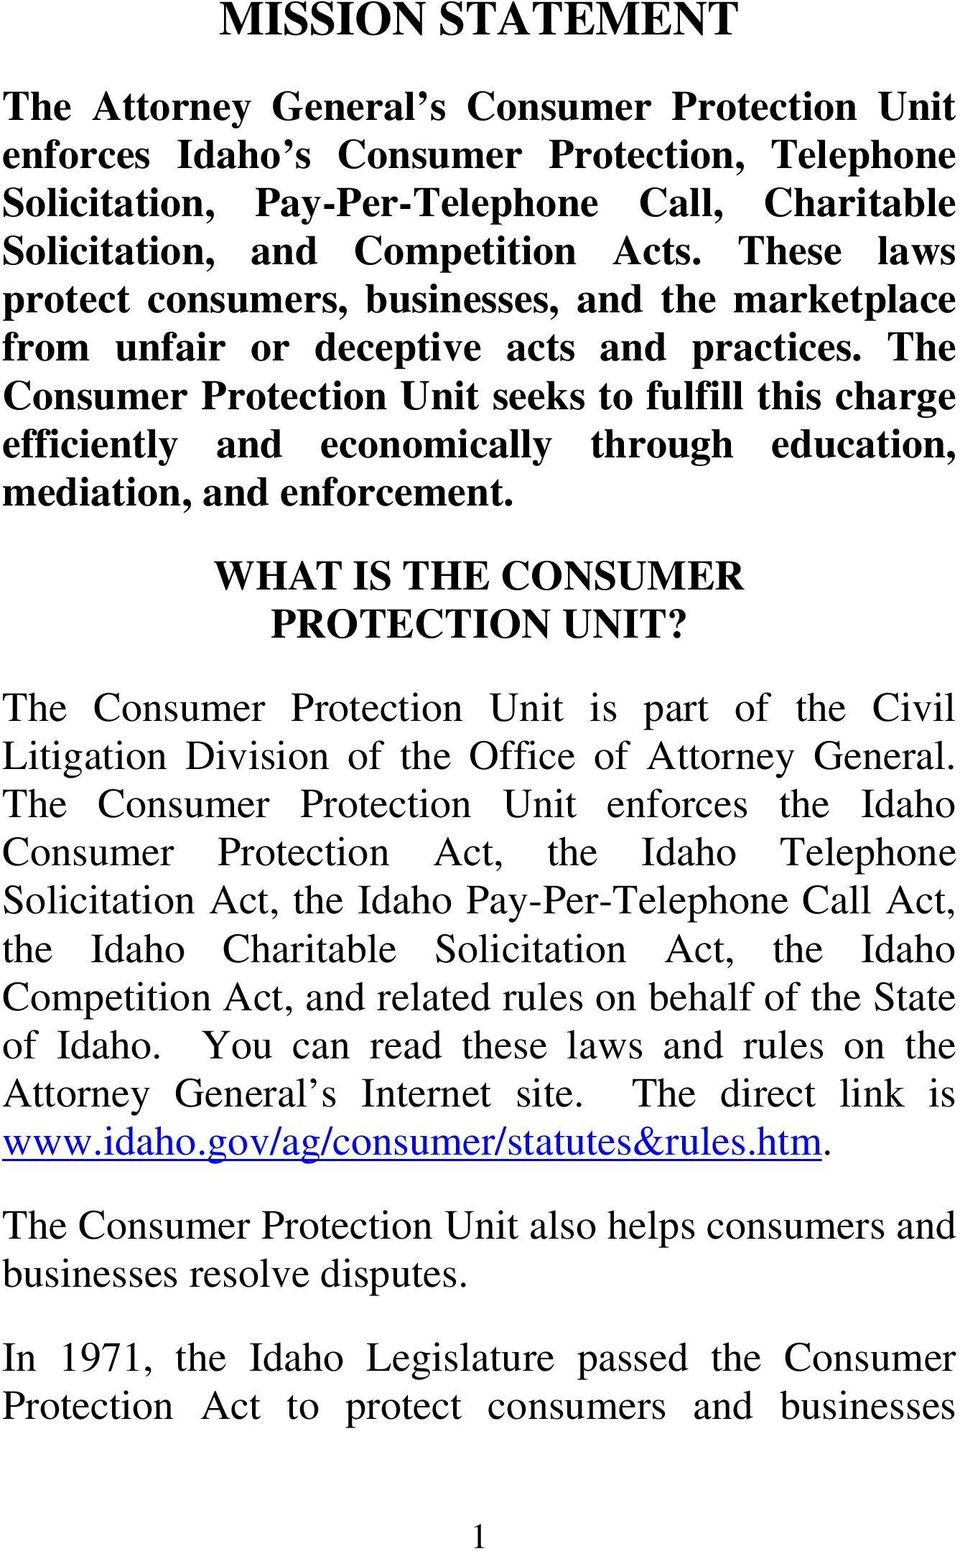 The Consumer Protection Unit seeks to fulfill this charge efficiently and economically through education, mediation, and enforcement. WHAT IS THE CONSUMER PROTECTION UNIT?